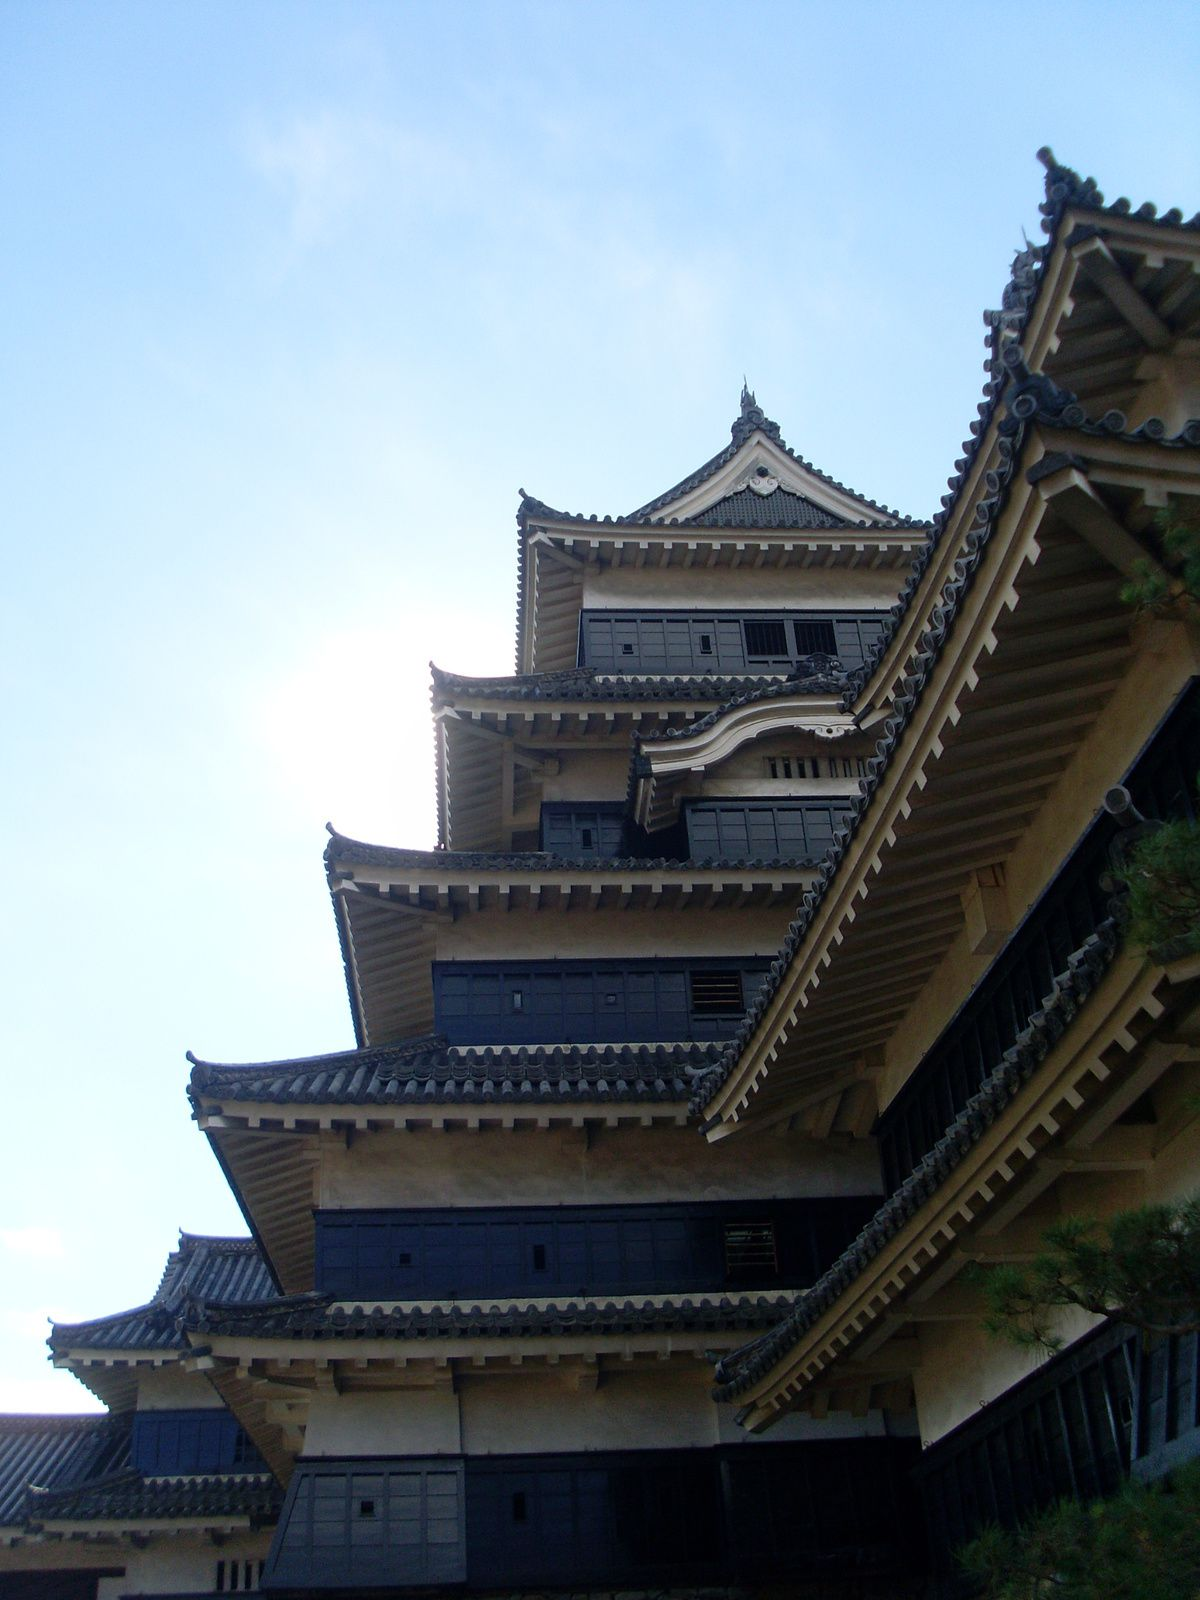 Quelques photos du chateau noir à Matsumoto (Japon)